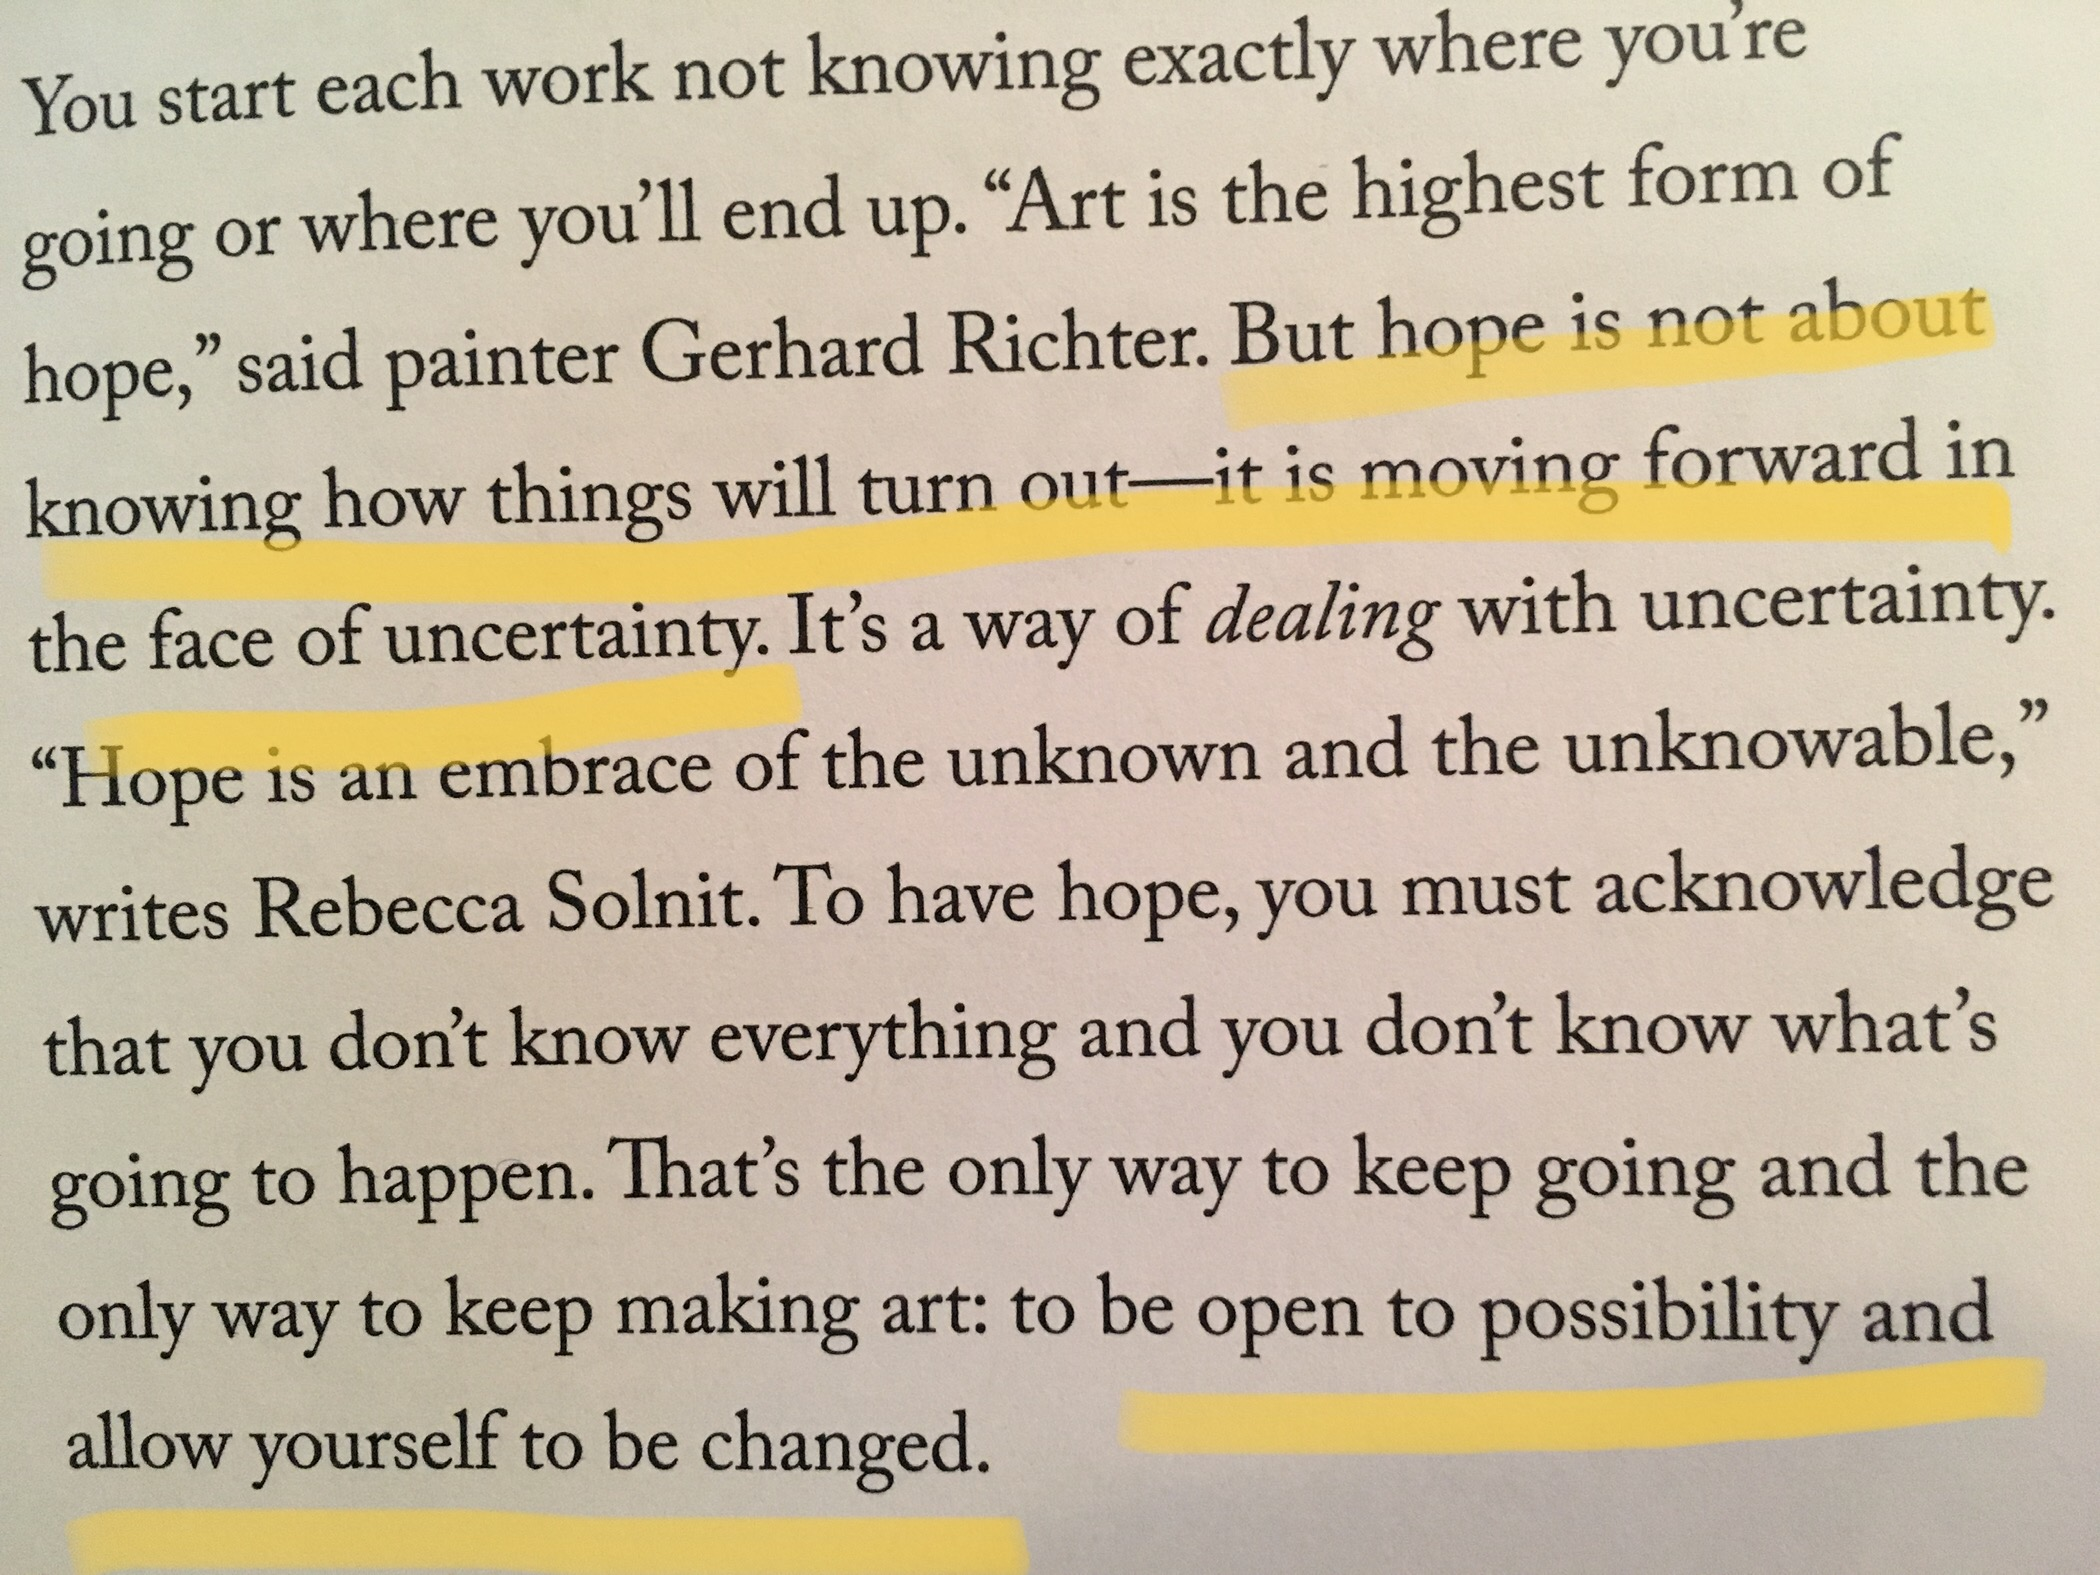 But hope is not about knowing how things will turn out--it is moving forward in the face of uncertainty.